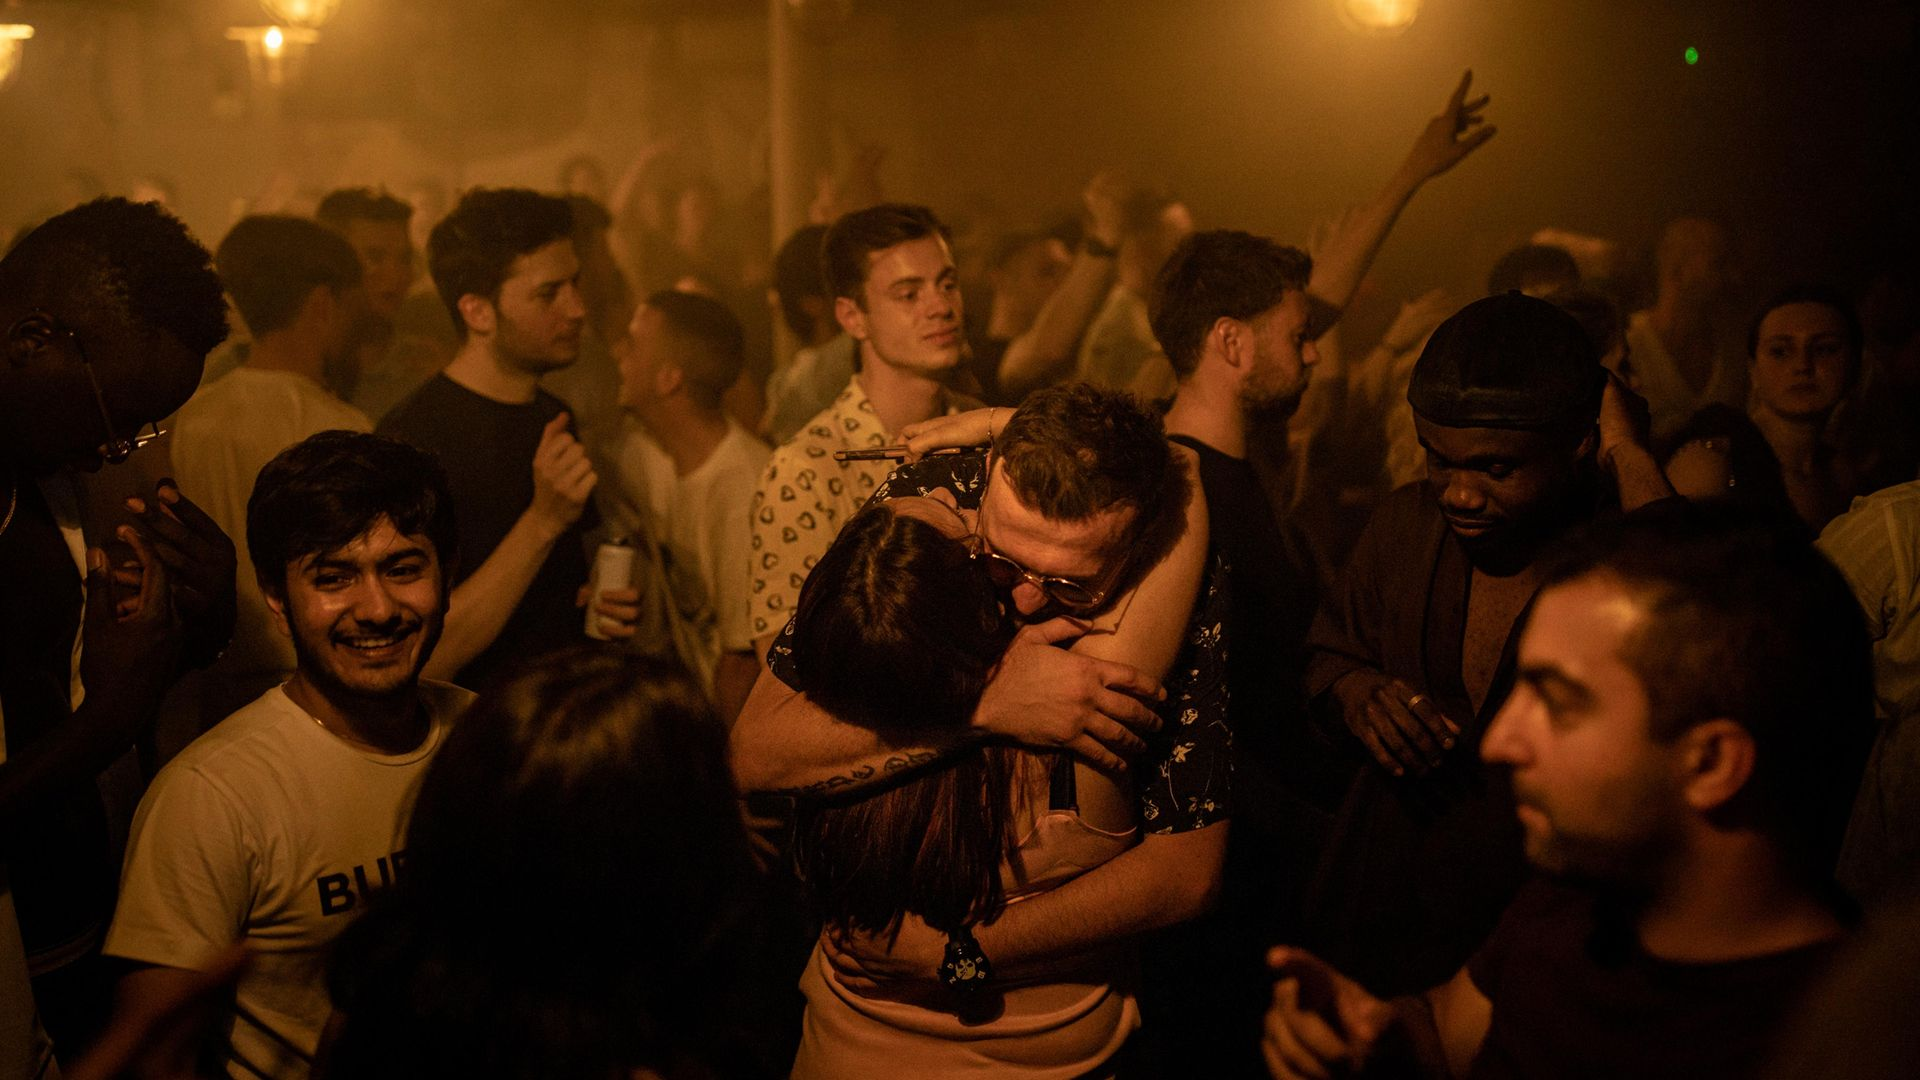 People hug in the middle of the dancefloor at Egg London nightclub as England drops most of its remaining Covid-19 social restrictions - Credit: Getty Images